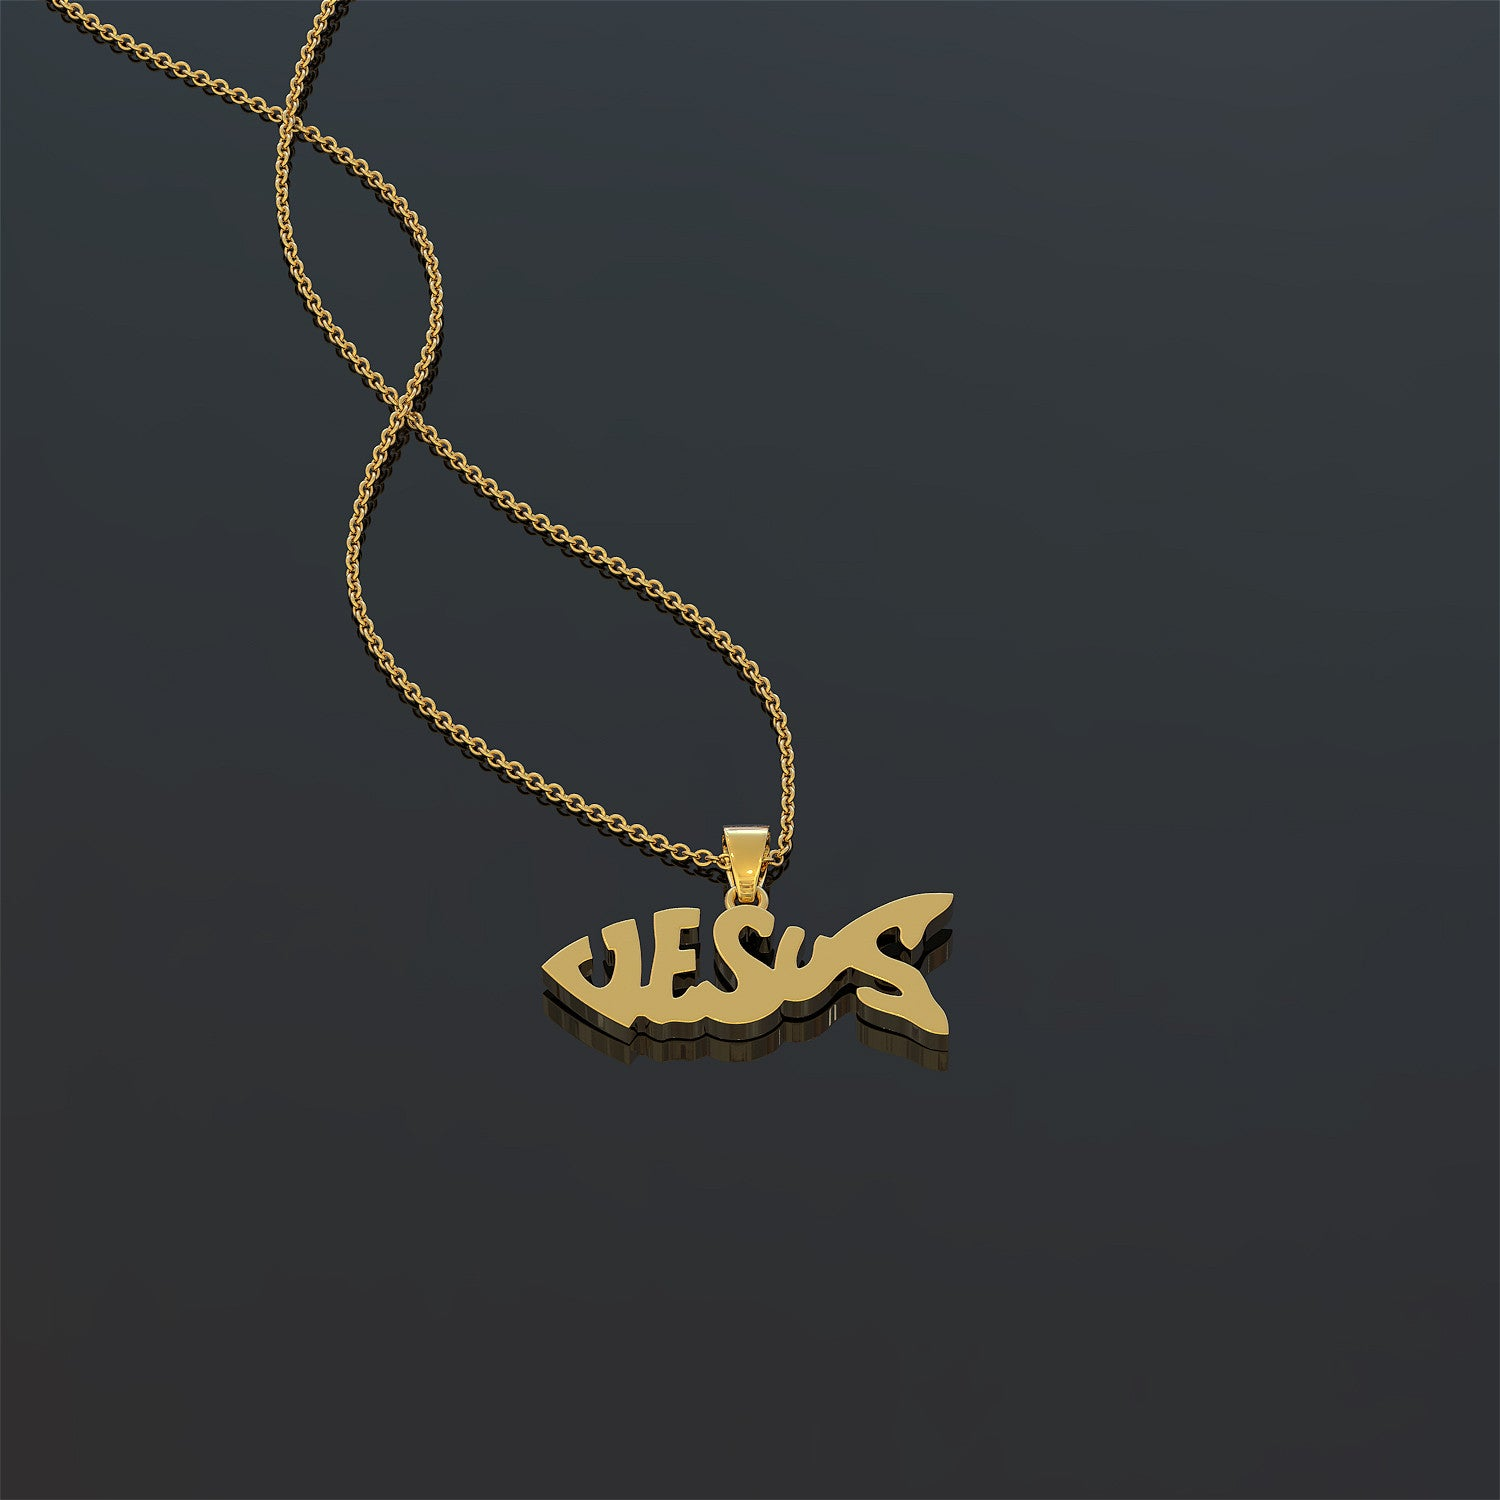 Friends of Jesus Necklace